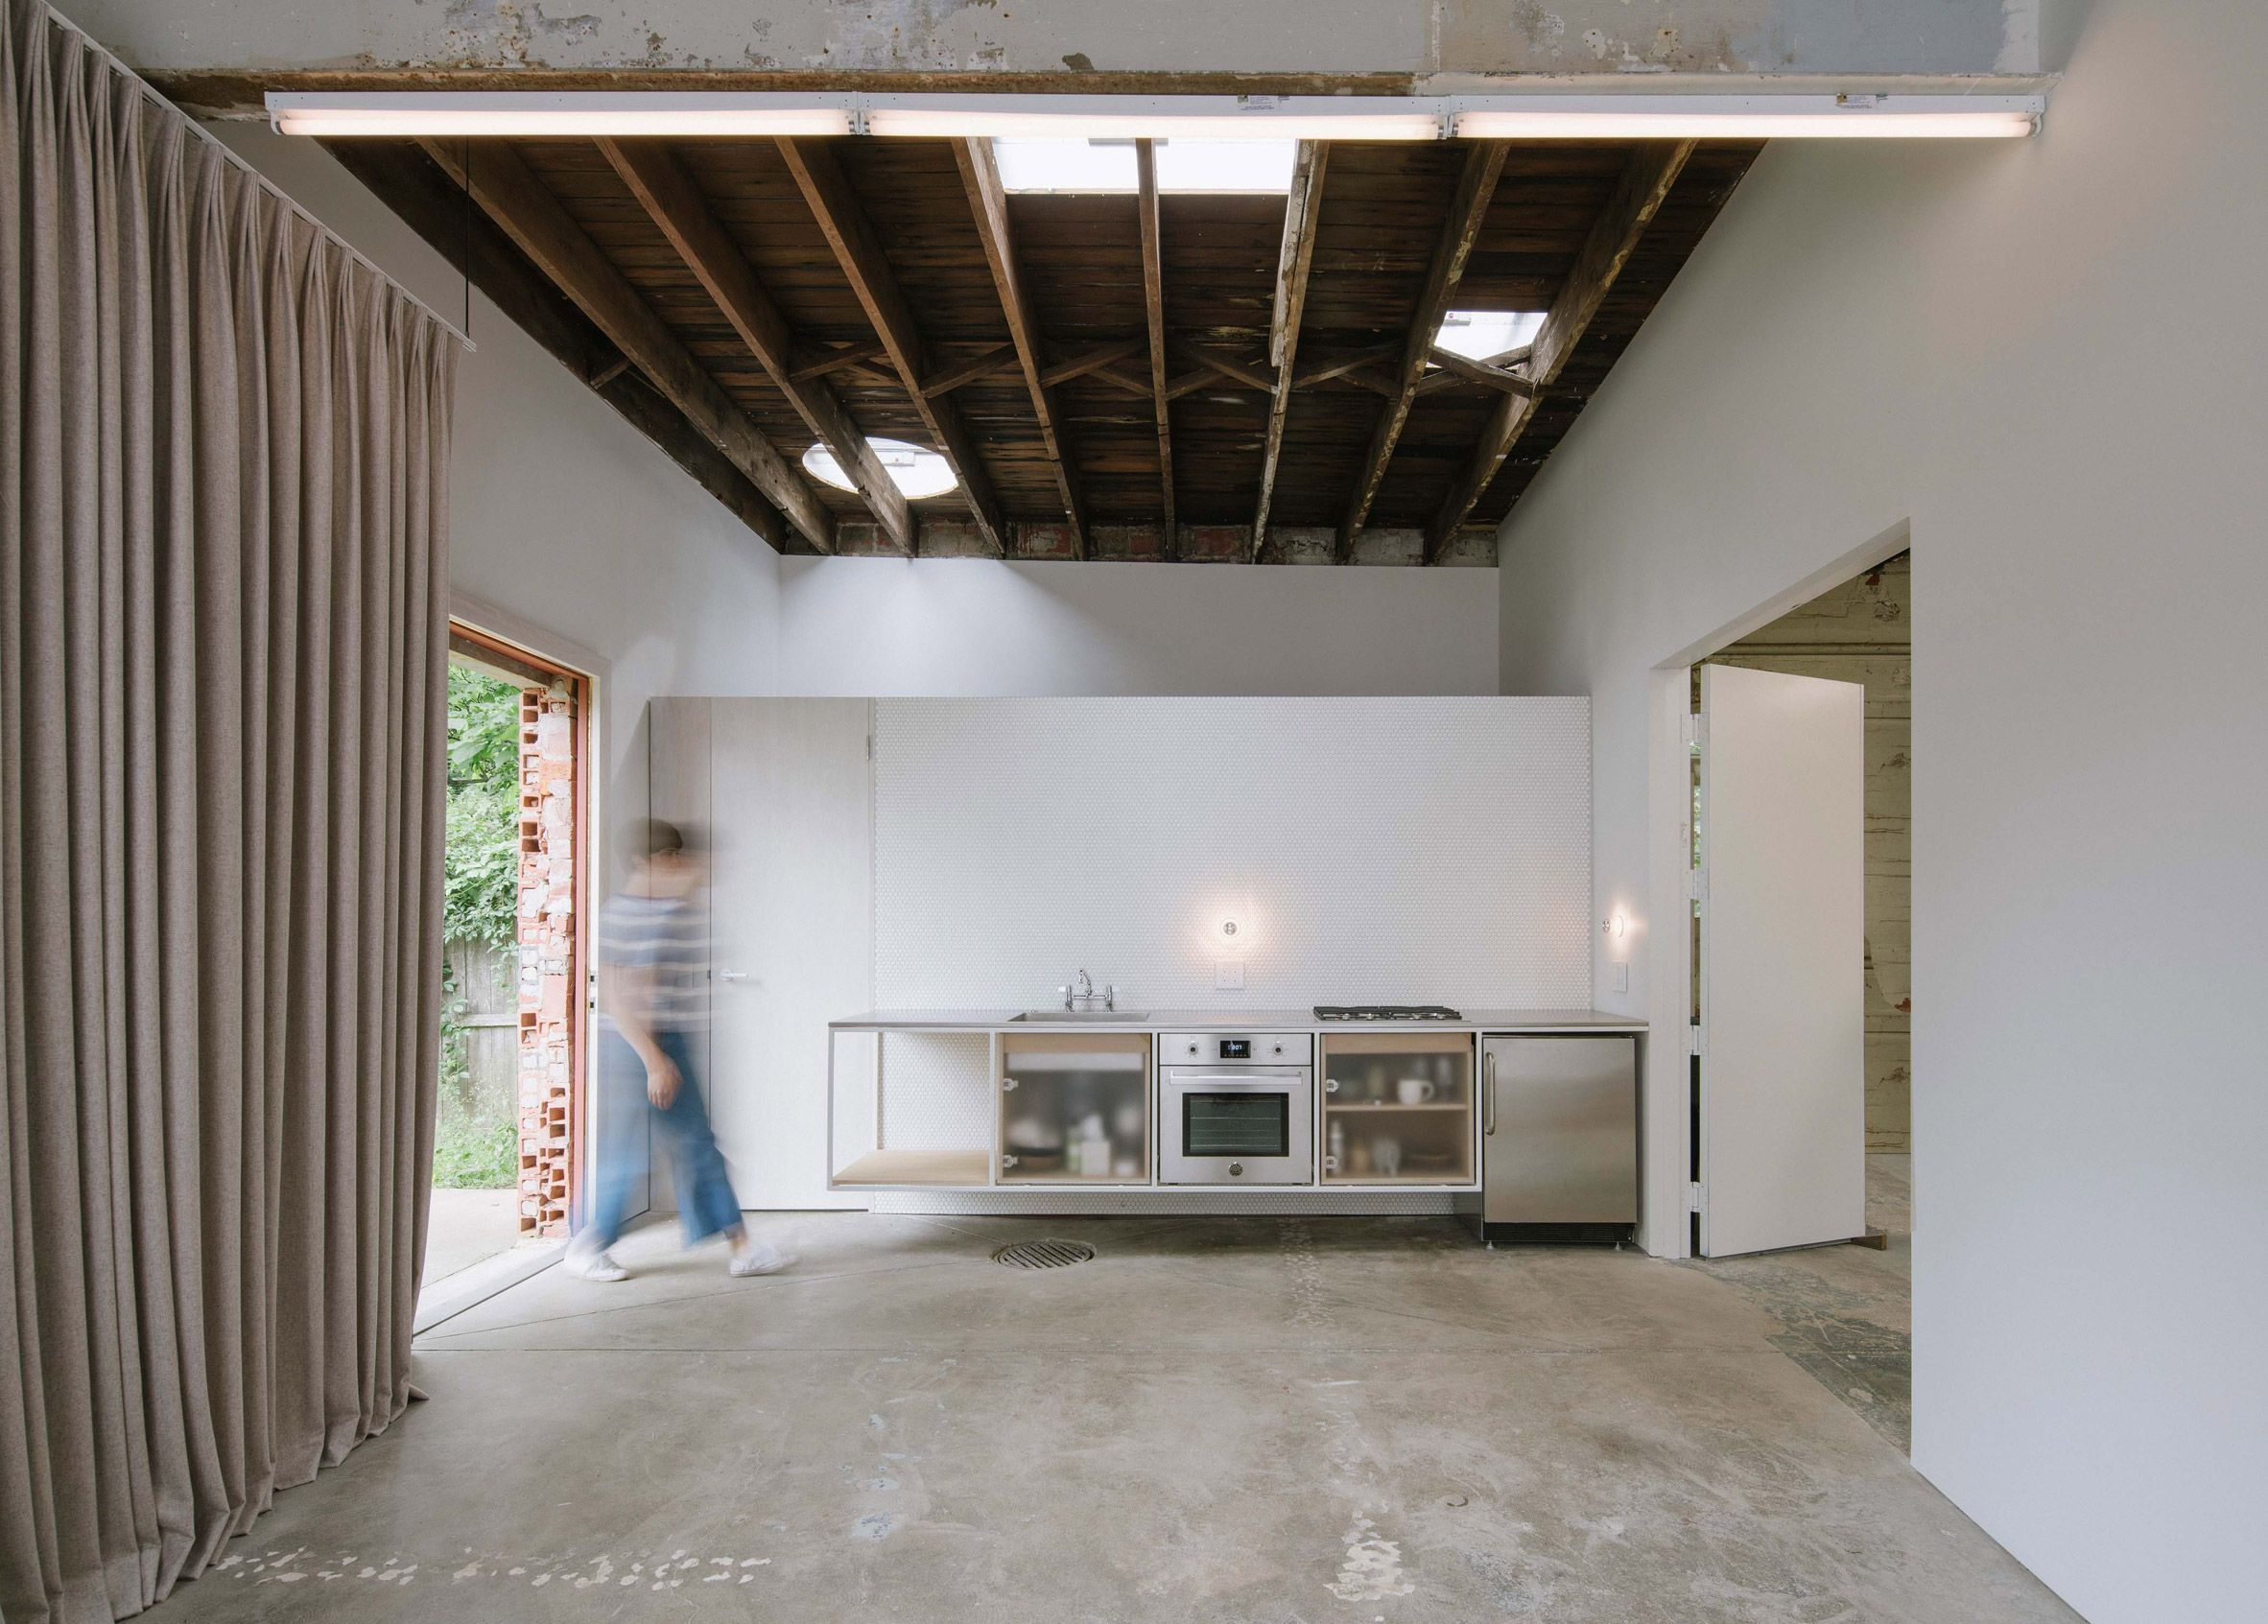 Has Retained Ling Paintwork Uneven Concrete Flooring And Rough Wooden Beams While Converting A Garage In Buffalo New York Into Live Work E